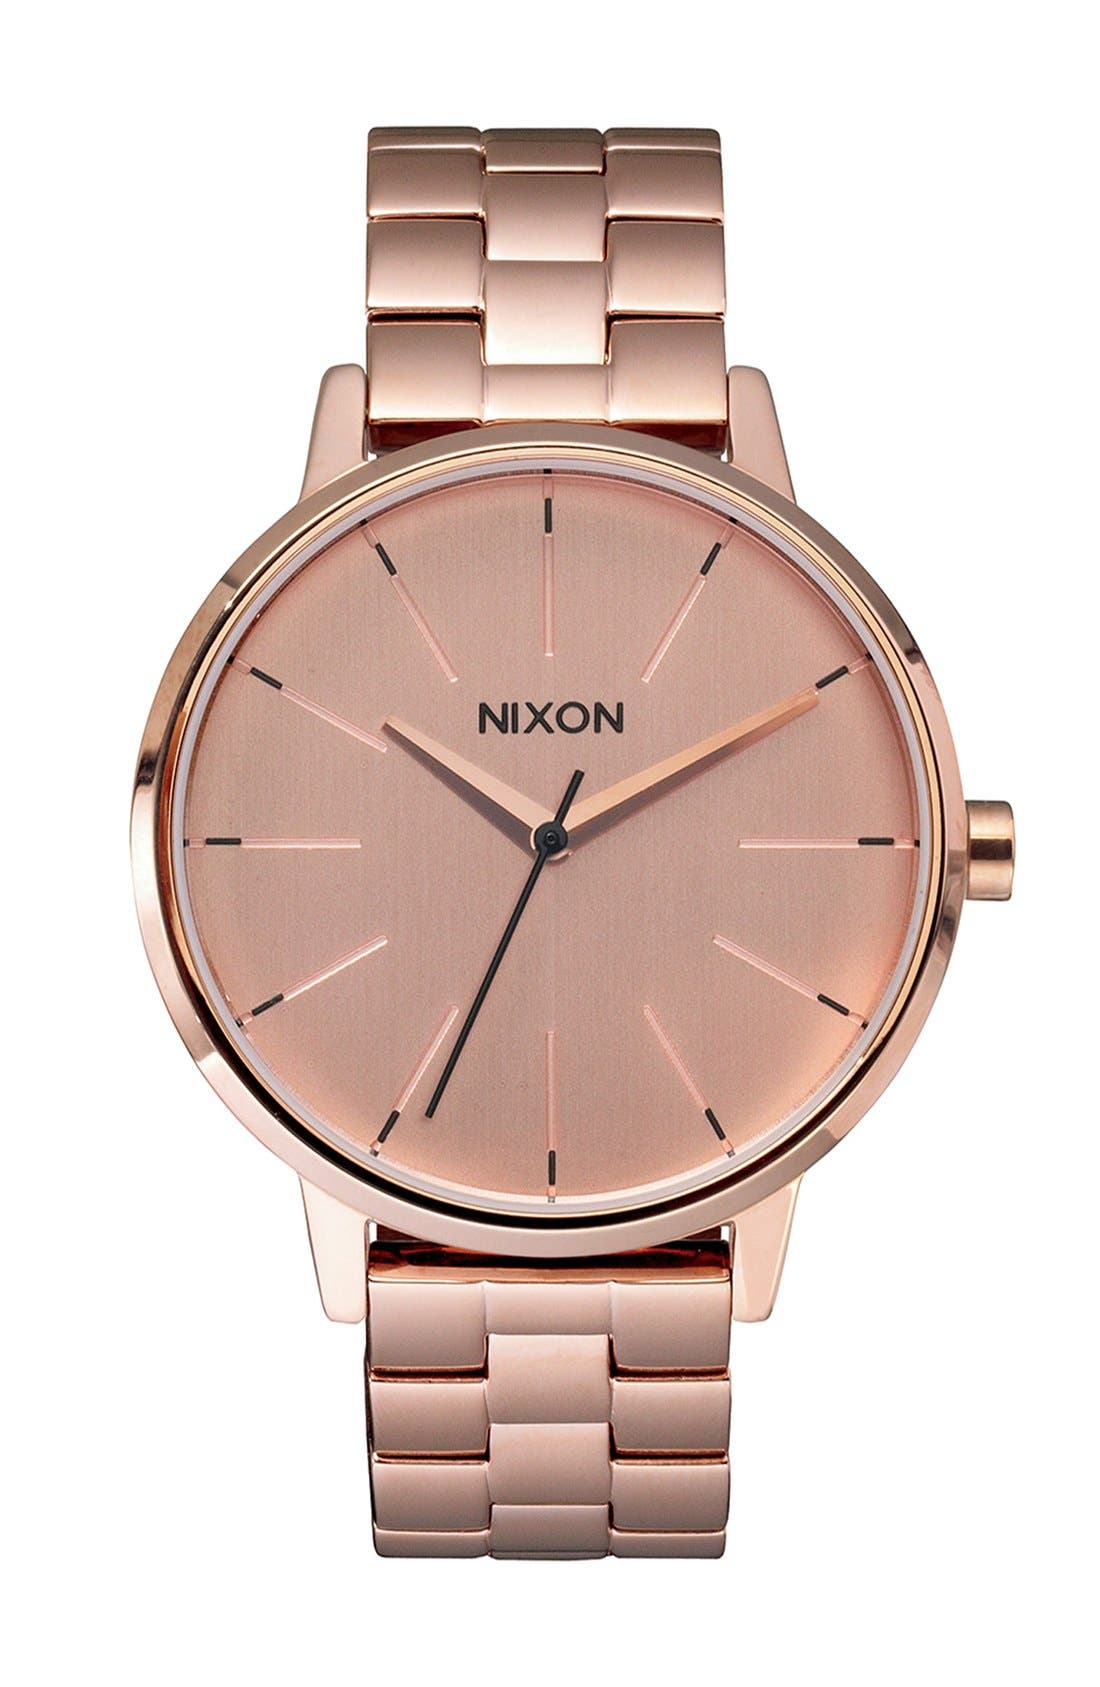 NIXON The Kensington Round Bracelet Watch, 37mm